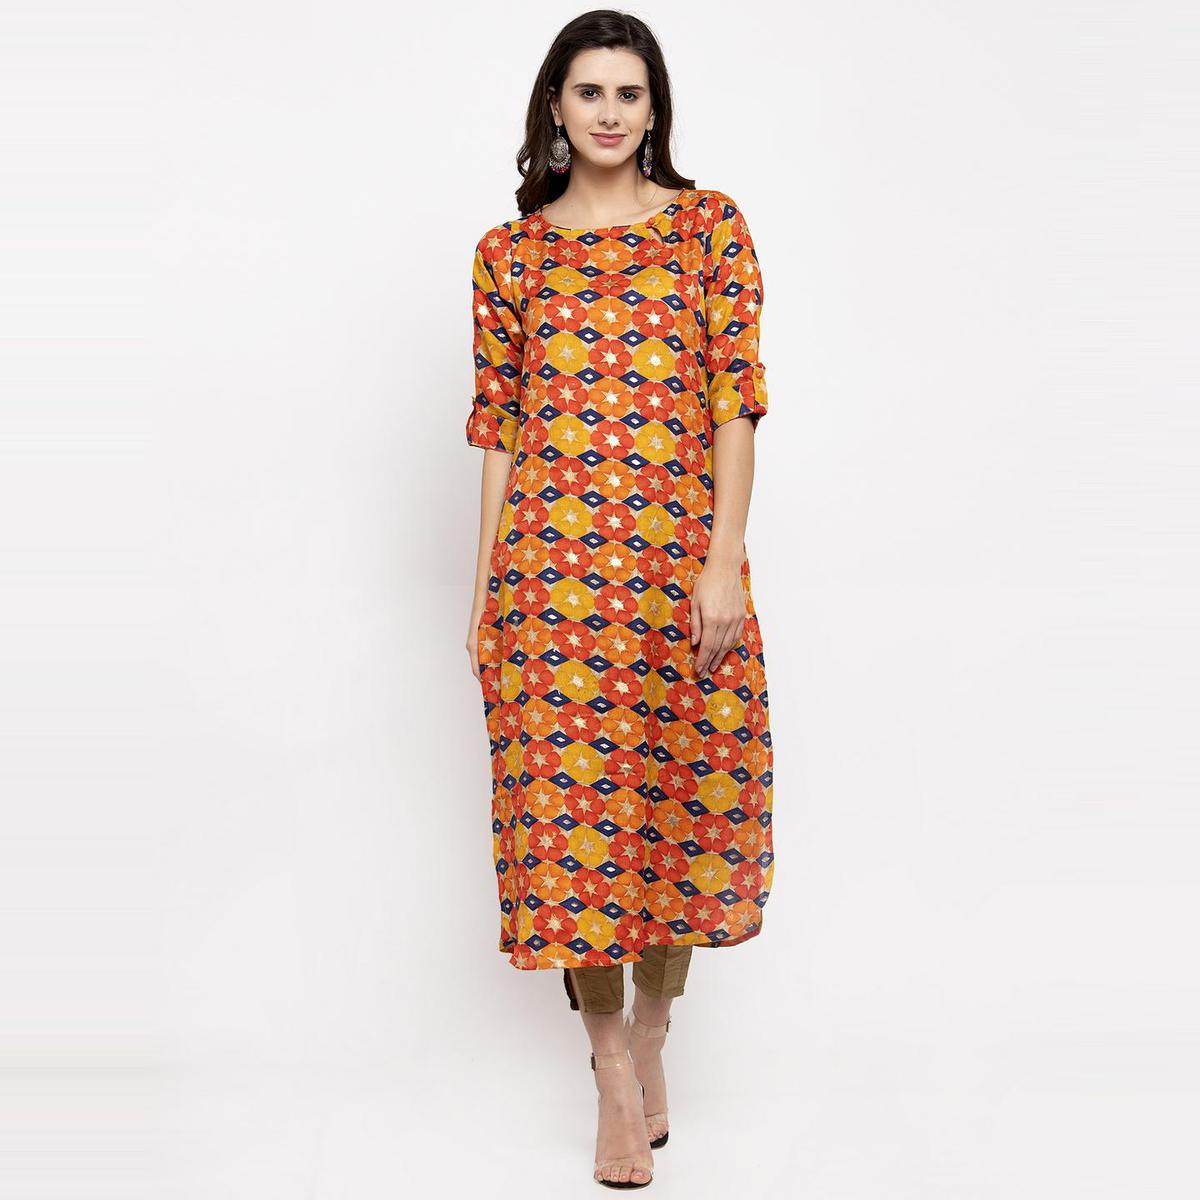 Aujjessa - Orange Colored Casual Wear Floral Printed Art Silk Kurti